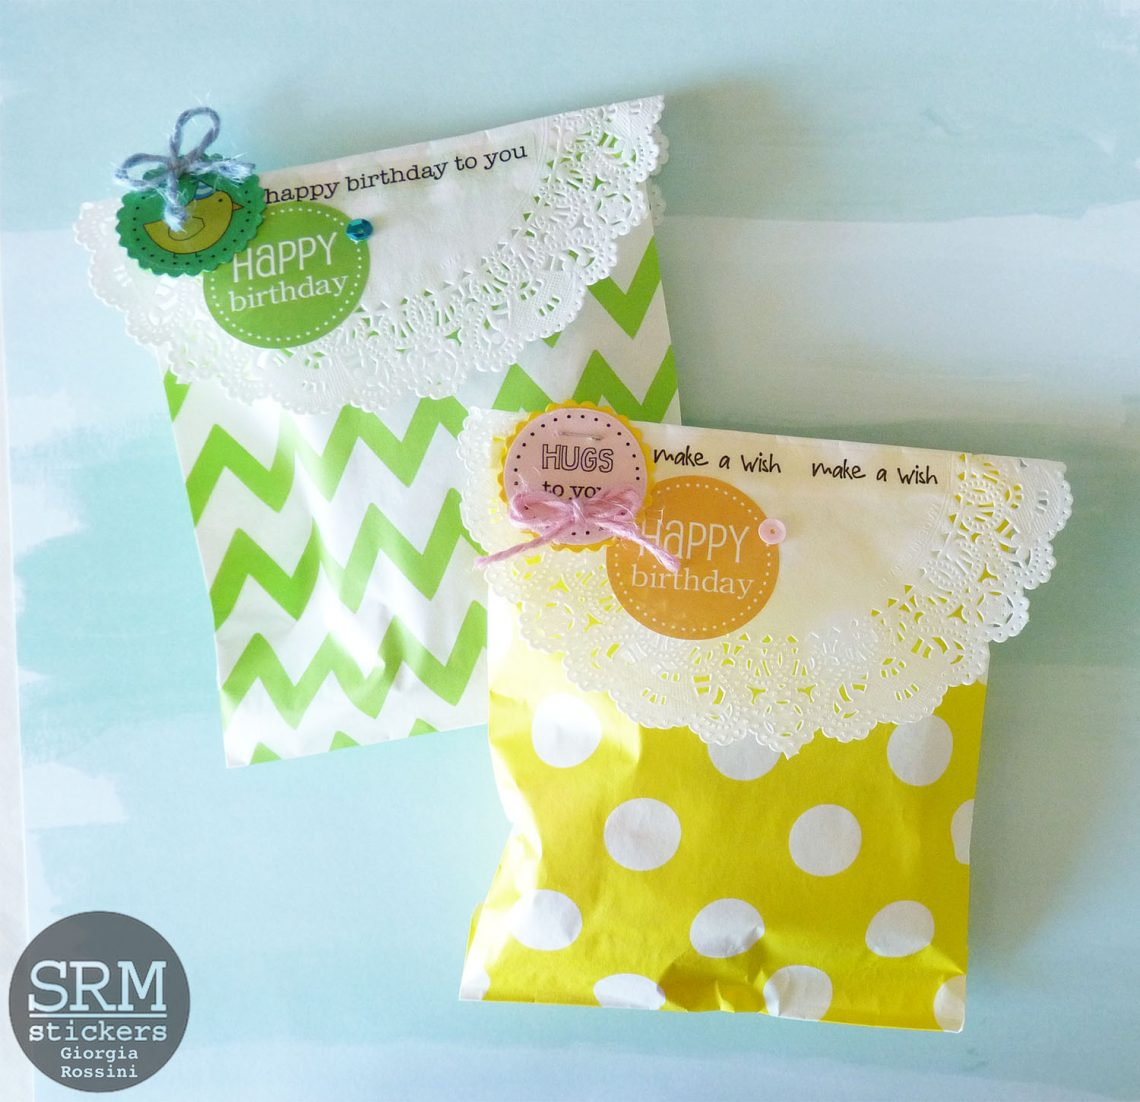 SRM stickers – patterned birthday gifts bags